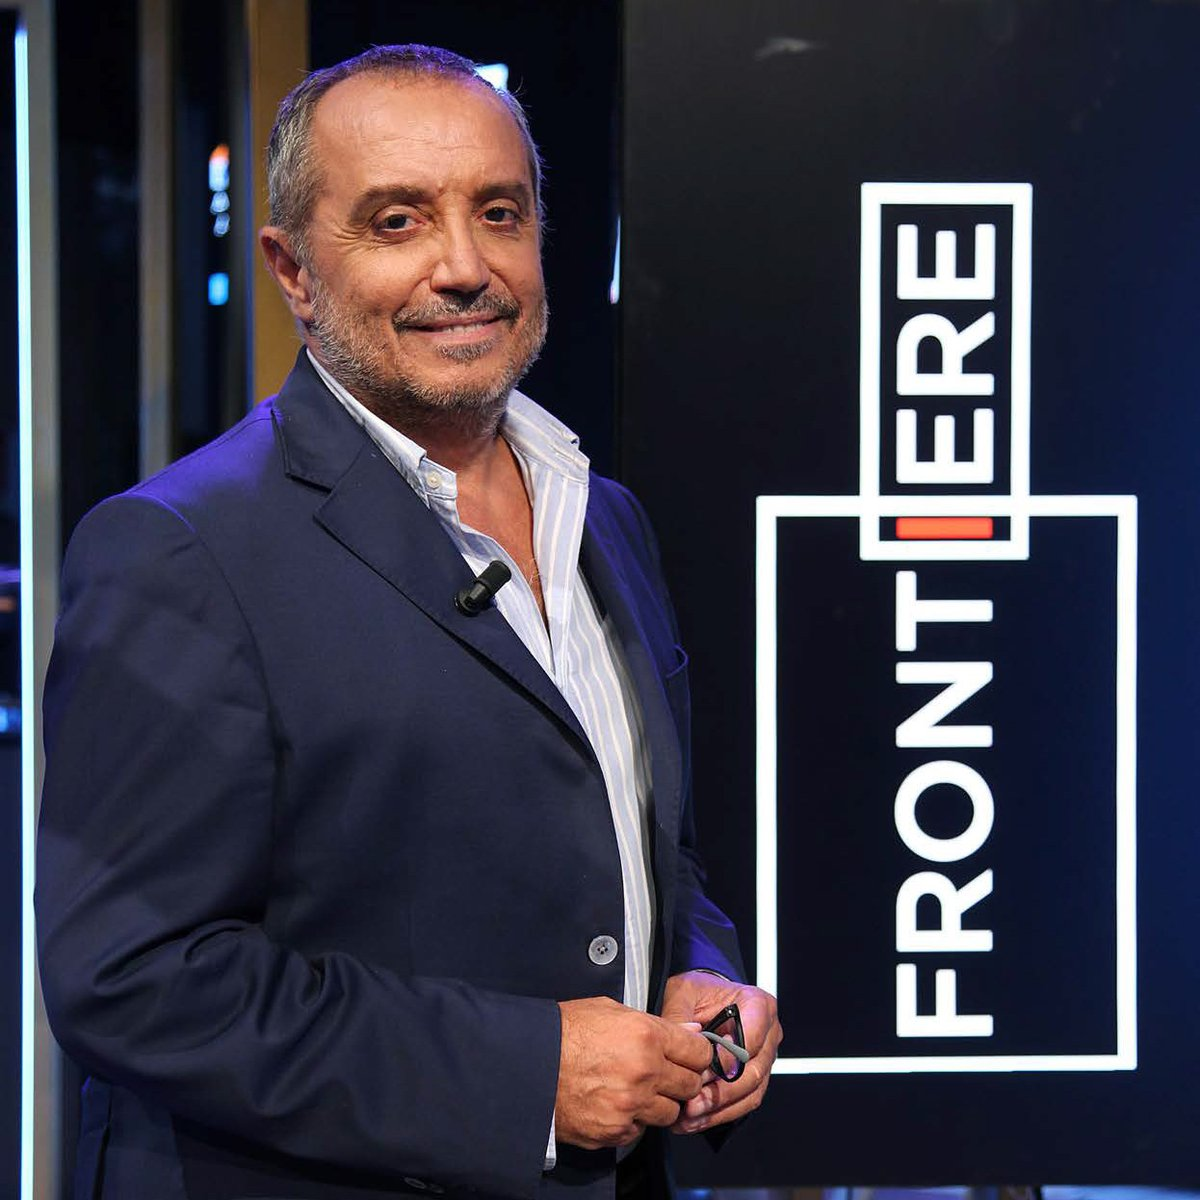 #frontiere